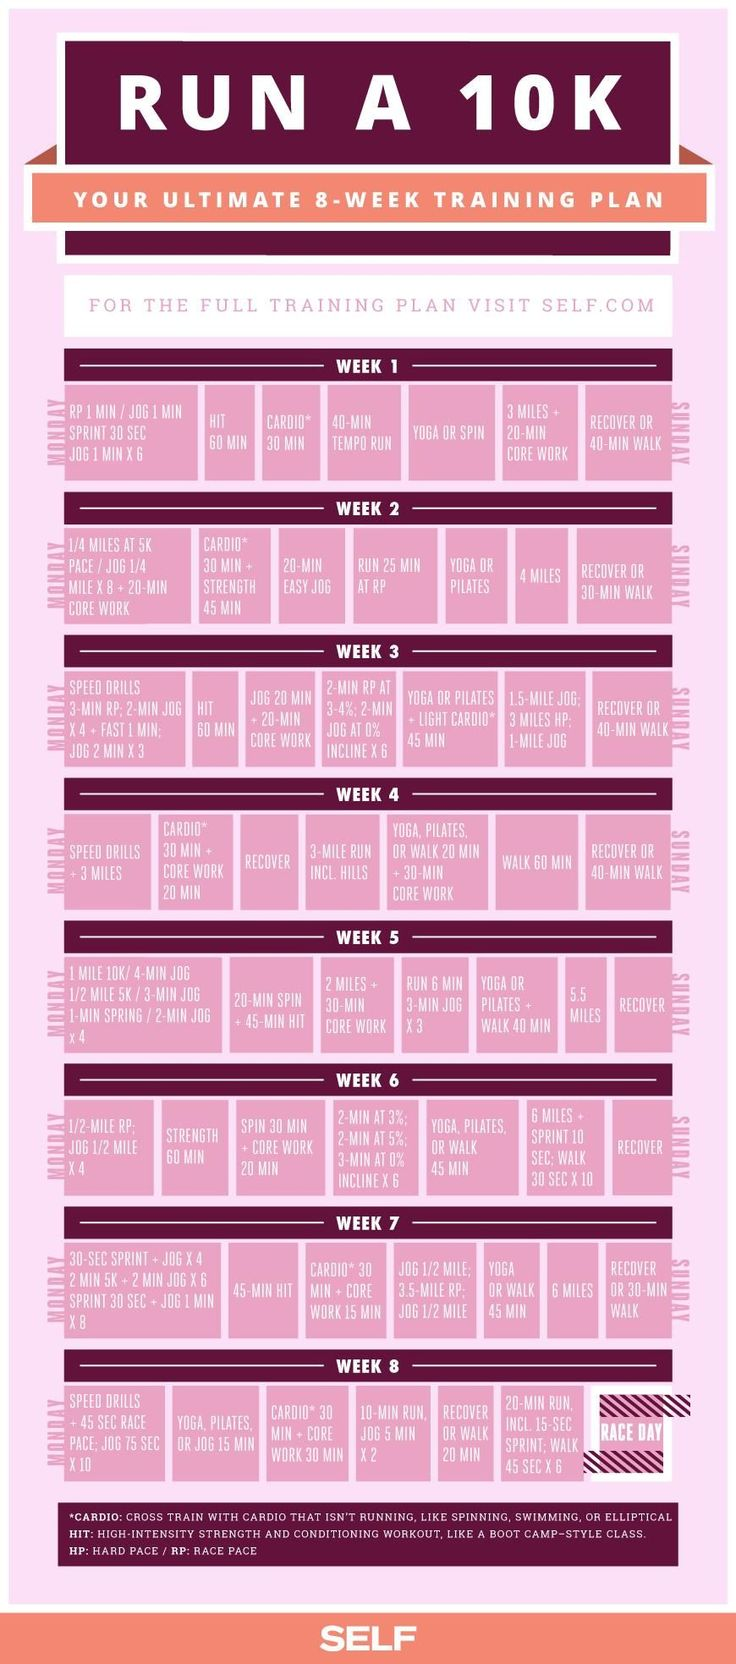 Ready for a challenge, complete a 10K! Coach Katie Bottini, who competes in races and triathlons, created this beginner-friendly eight-week training plan. She's coached two SELF editors to PRs in a 15K—so trust us, she knows her stuff! Check out the full plan below. Ready, set, run!